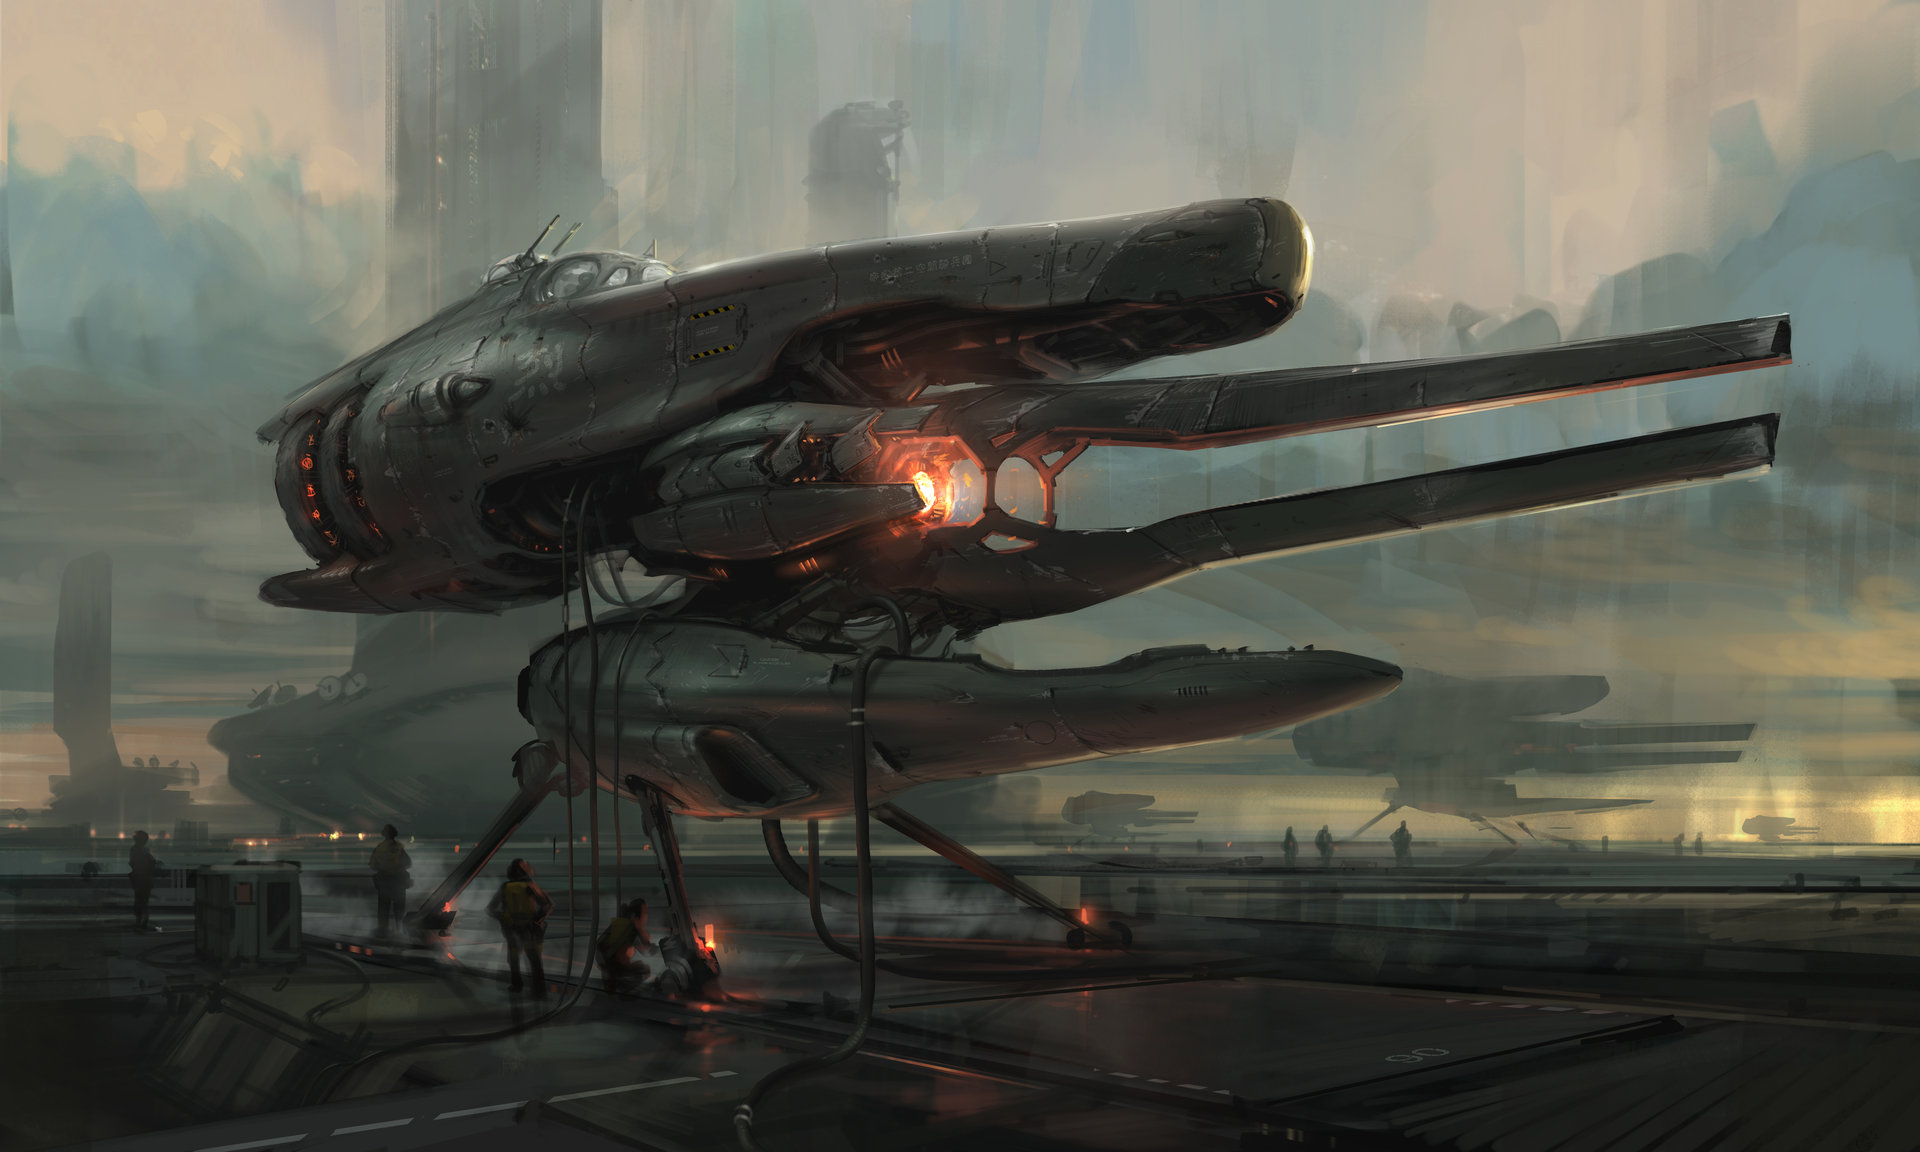 Amazing Sci-Fi Concept Designs by Prog Wang